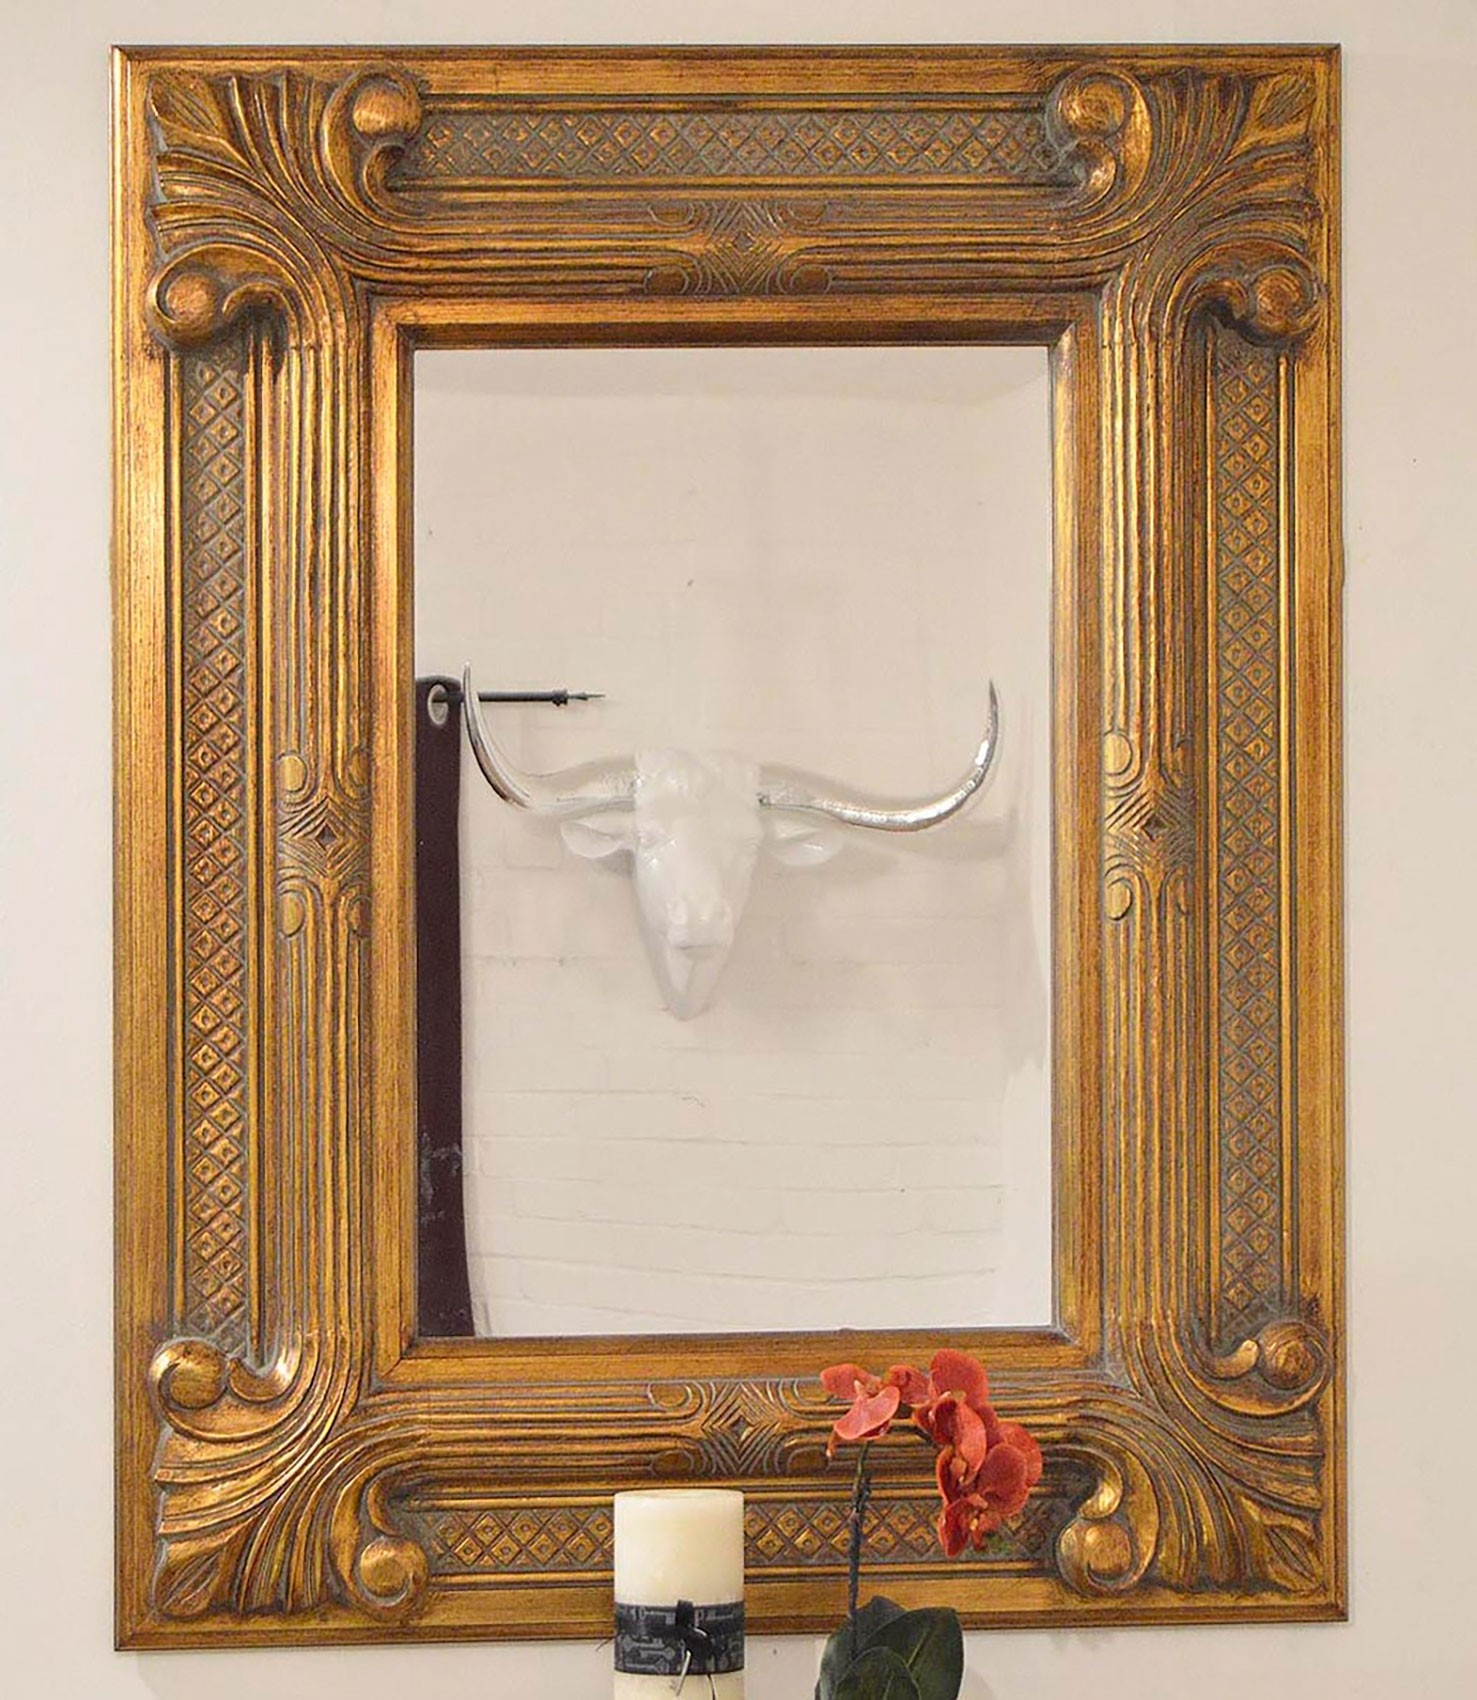 Large Modern Shab Chic 9 Frame Gold Regal Wall Mirror 4ft X Intended For Shabby Chic Gold Mirror (Image 10 of 15)